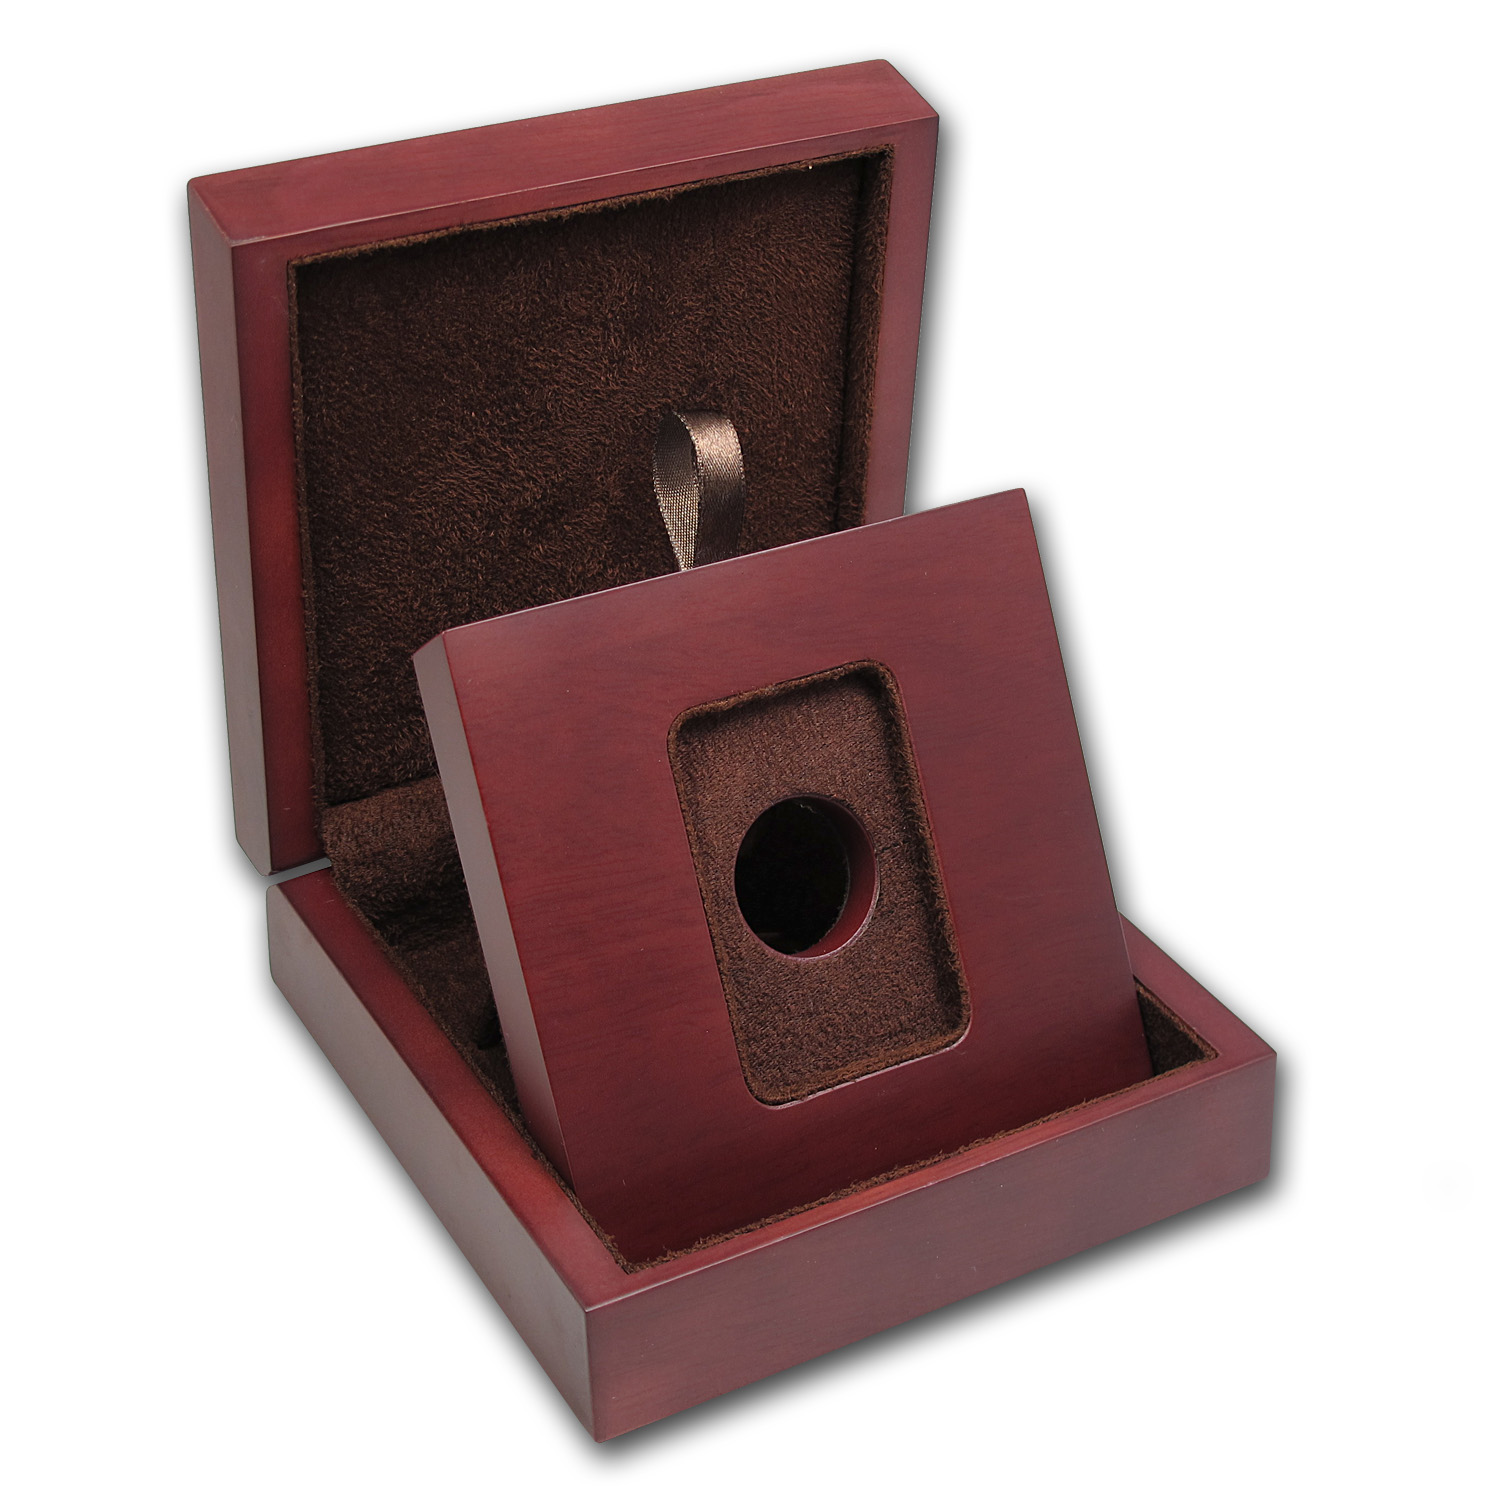 APMEX Wood Presentation Box - 1gm-10gm SMI/APMEX Gold Bar in TEP